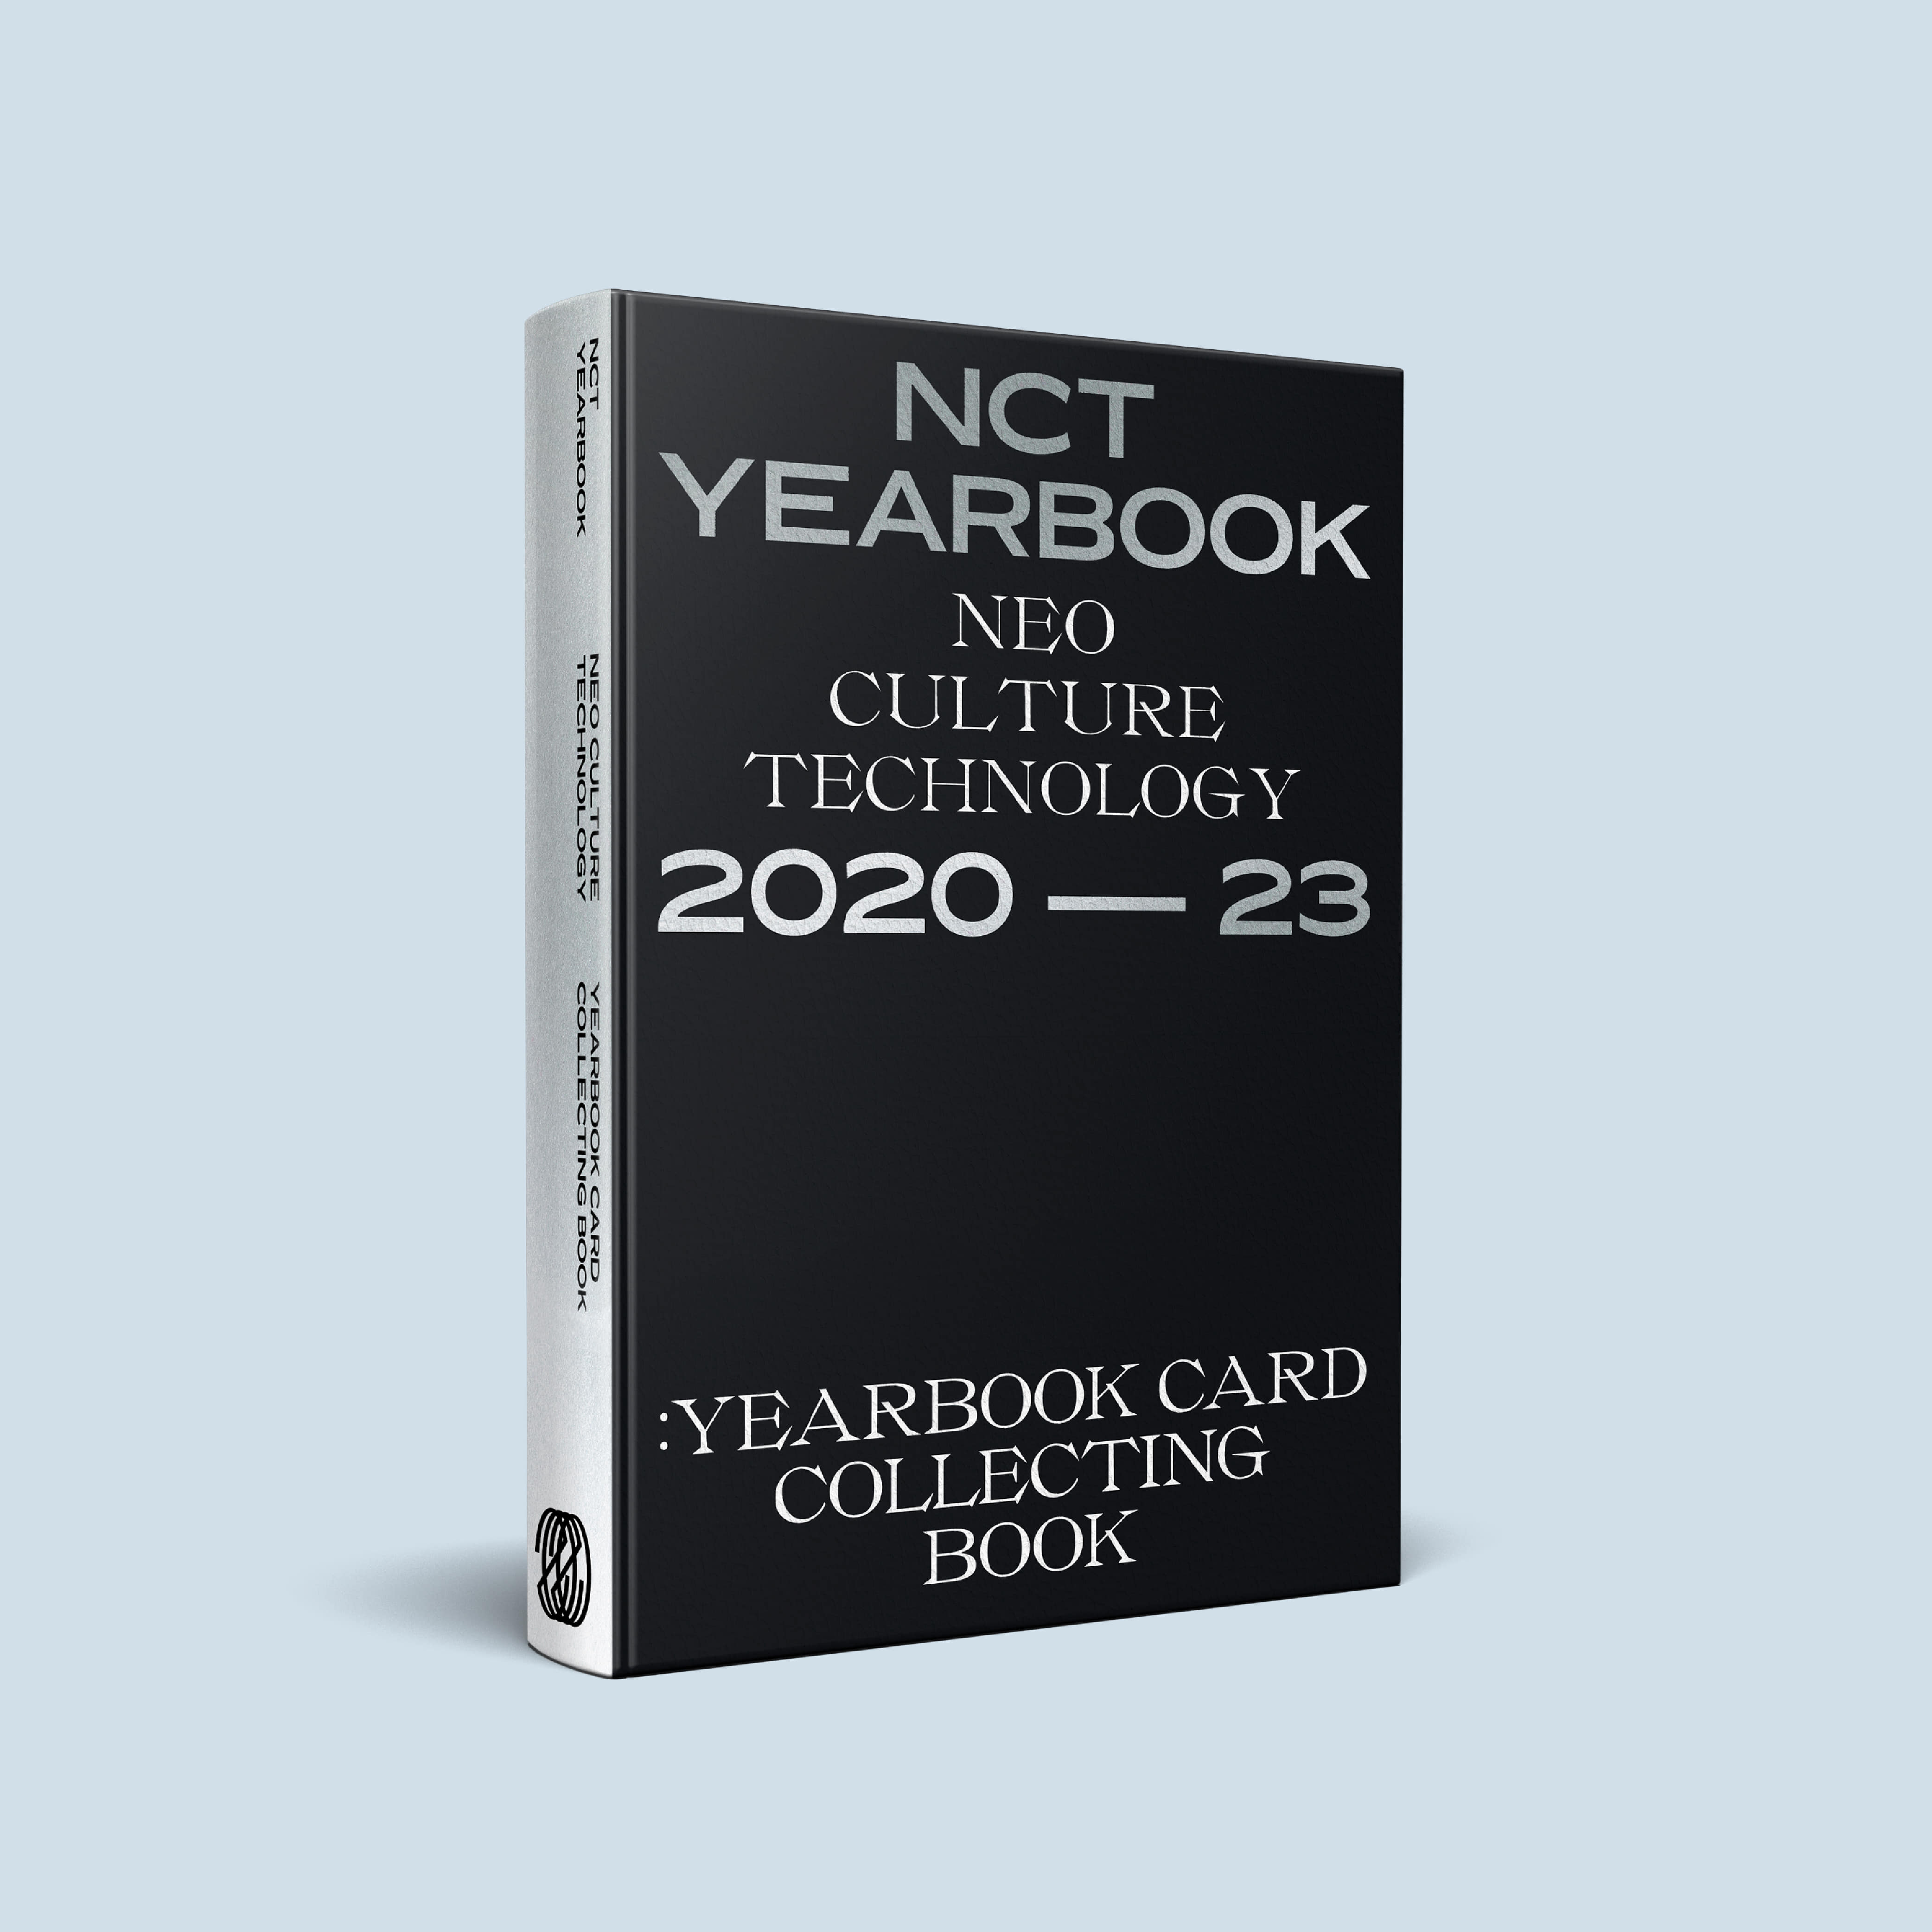 NCT YEARBOOK - Card Collecting Book케이팝스토어(kpop store)